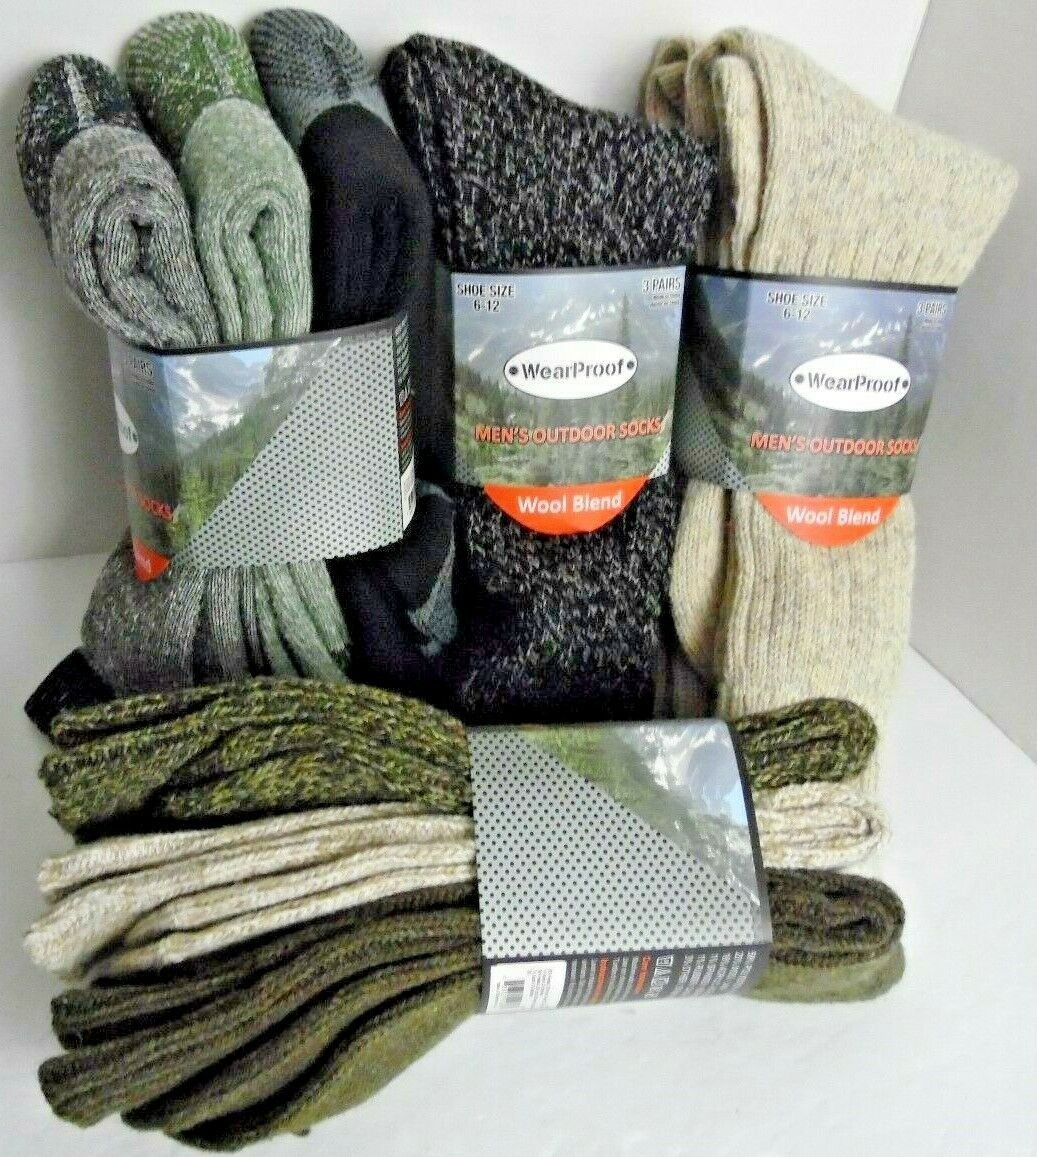 3 Pairs WearProof Mens Outdoor Socks Shoe Size 6-12 NEW Wool Blend CHOICE of 4